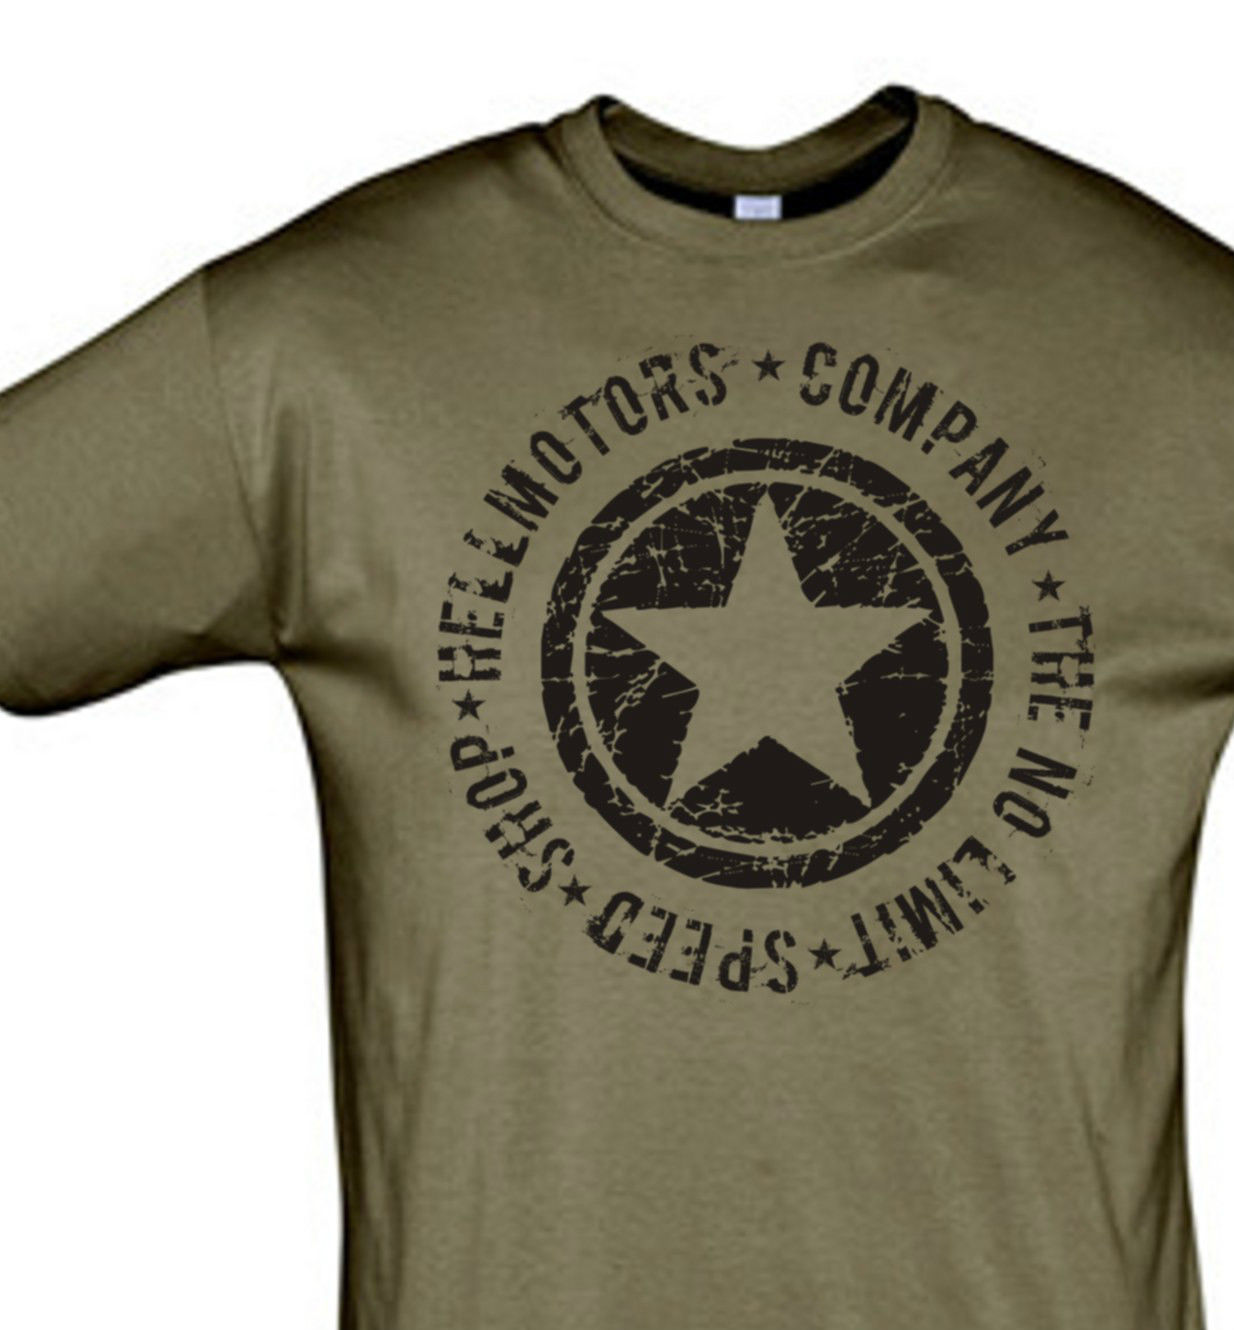 Mens <font><b>T</b></font> <font><b>Shirts</b></font> Fashion Jeep Willys Army Offroad <font><b>T</b></font>-<font><b>Shirt</b></font> <font><b>V8</b></font> US Car Chevy Oldschool 100% Cotton Short Sleeve O-Neck Tops Tee <font><b>Shirts</b></font> image